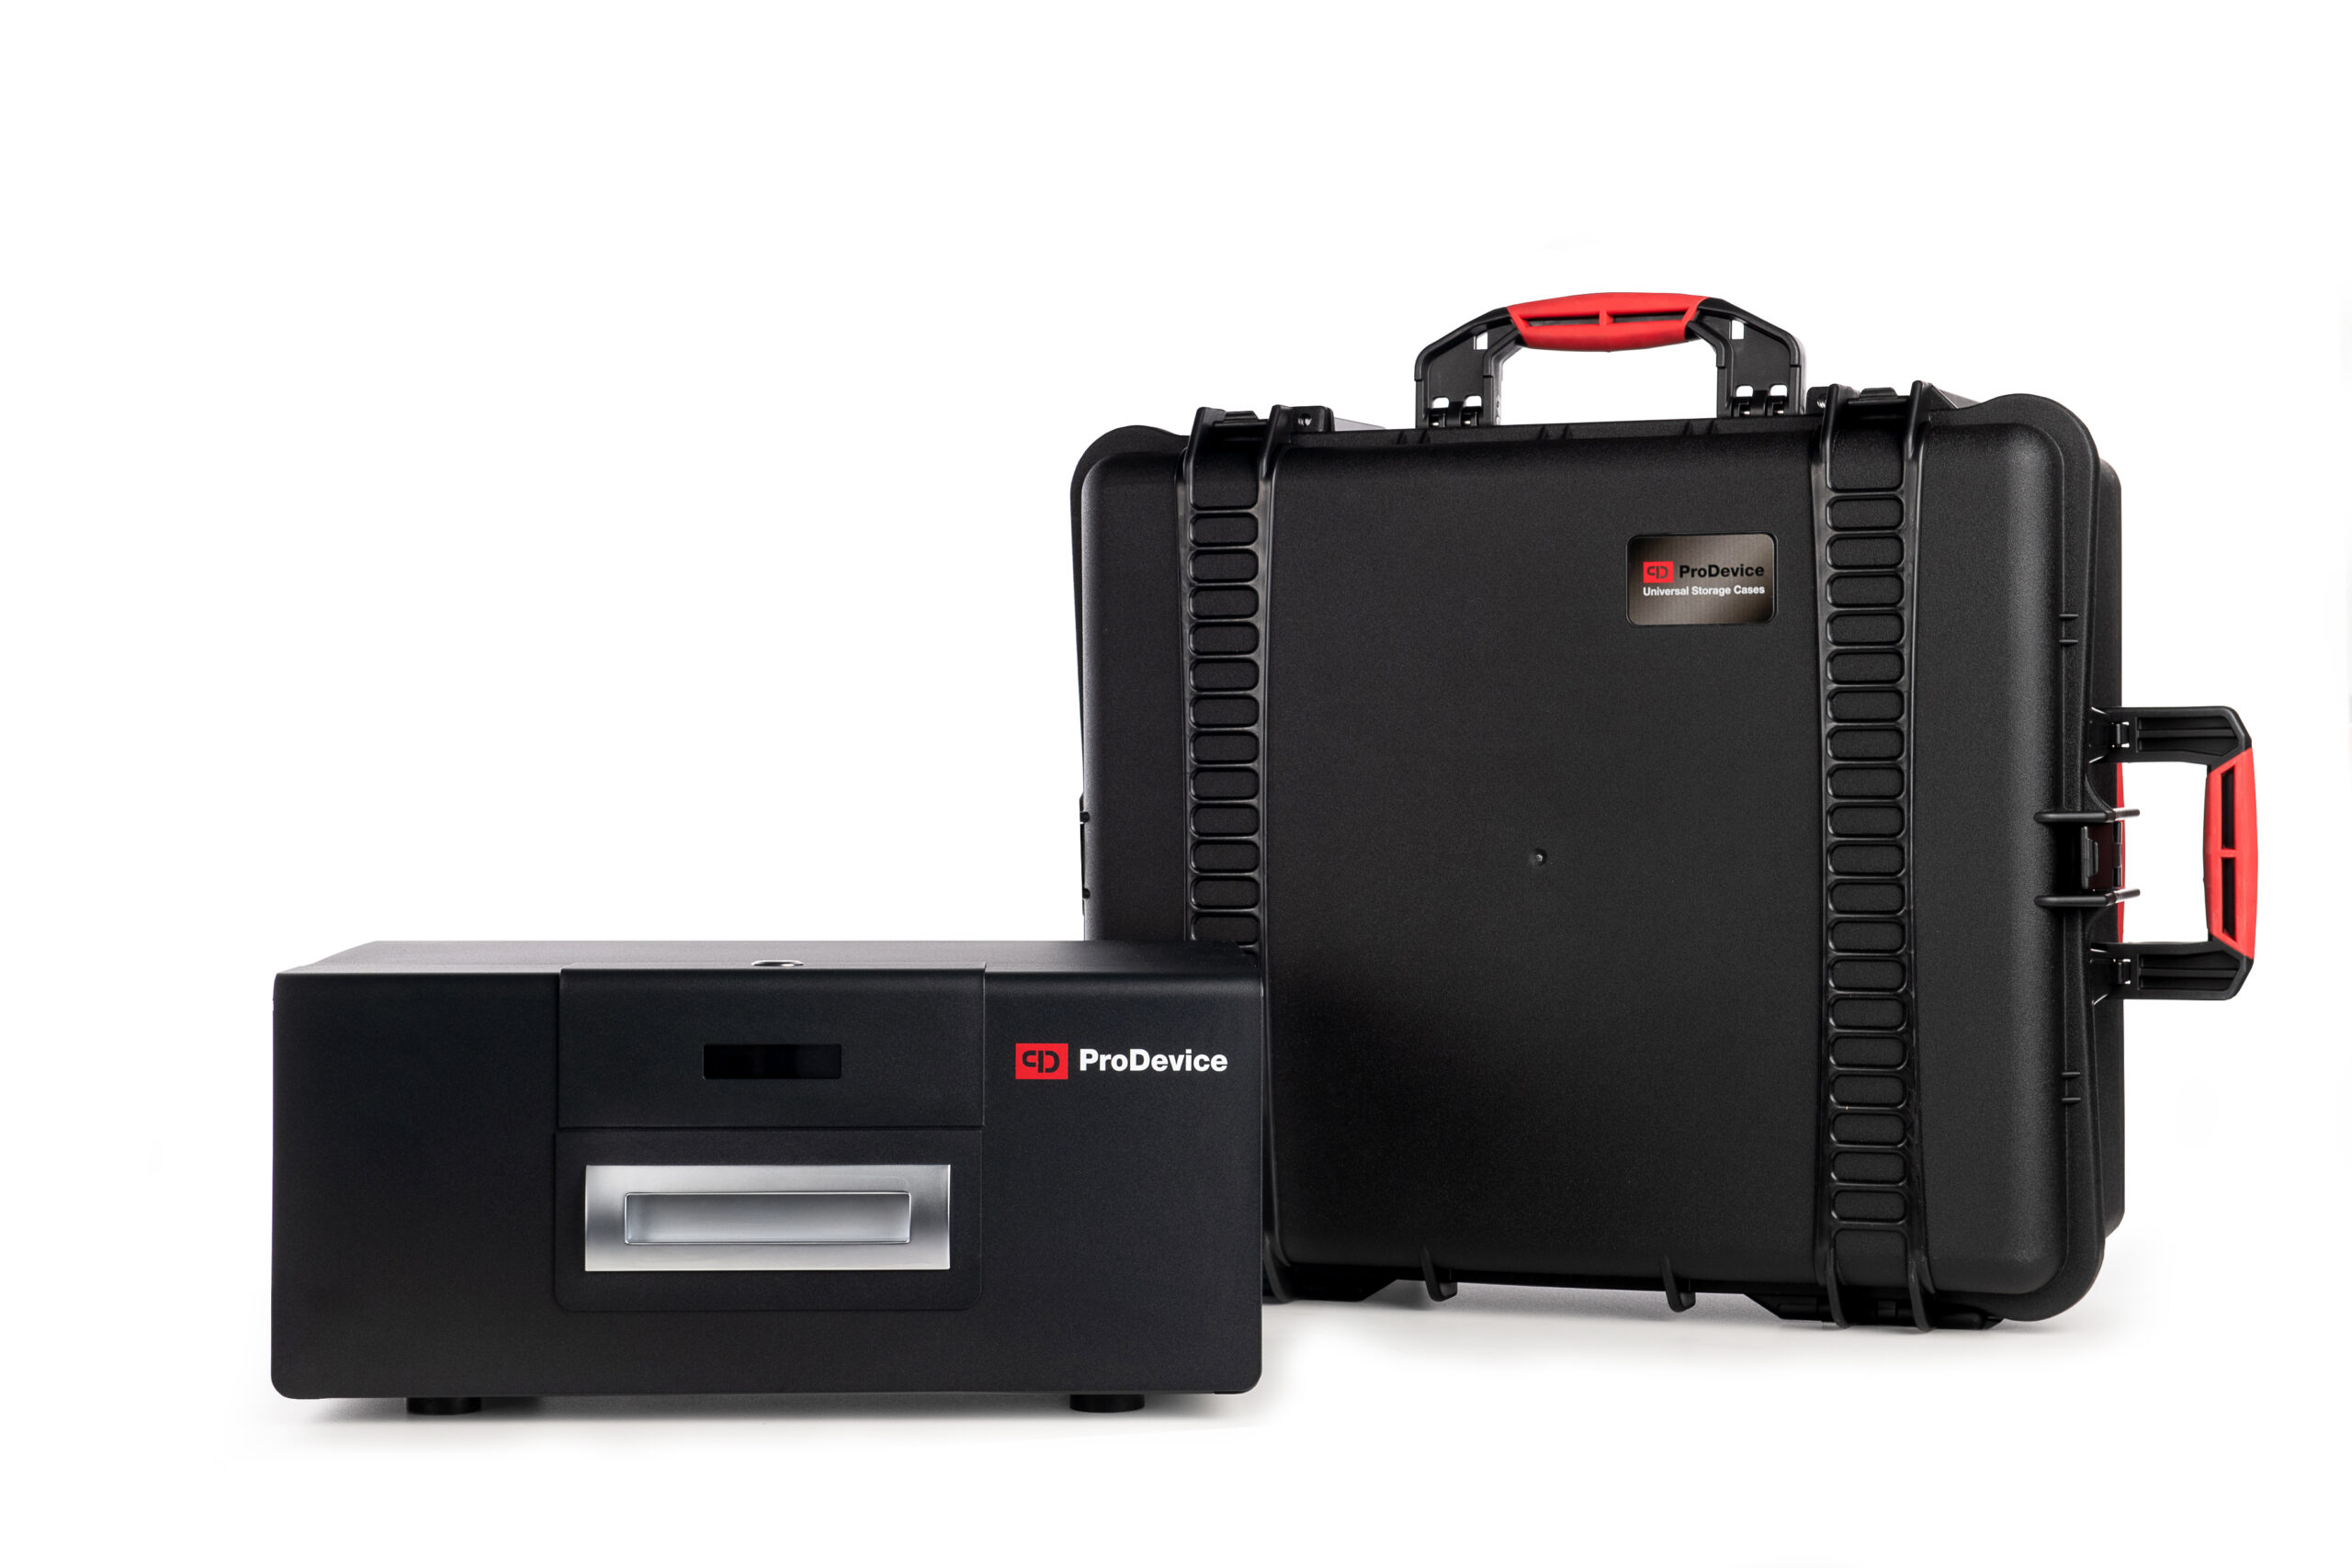 https://www.pro-device.com/wp-content/uploads/2021/06/Degausser-with-the-case-1-scaled.jpg